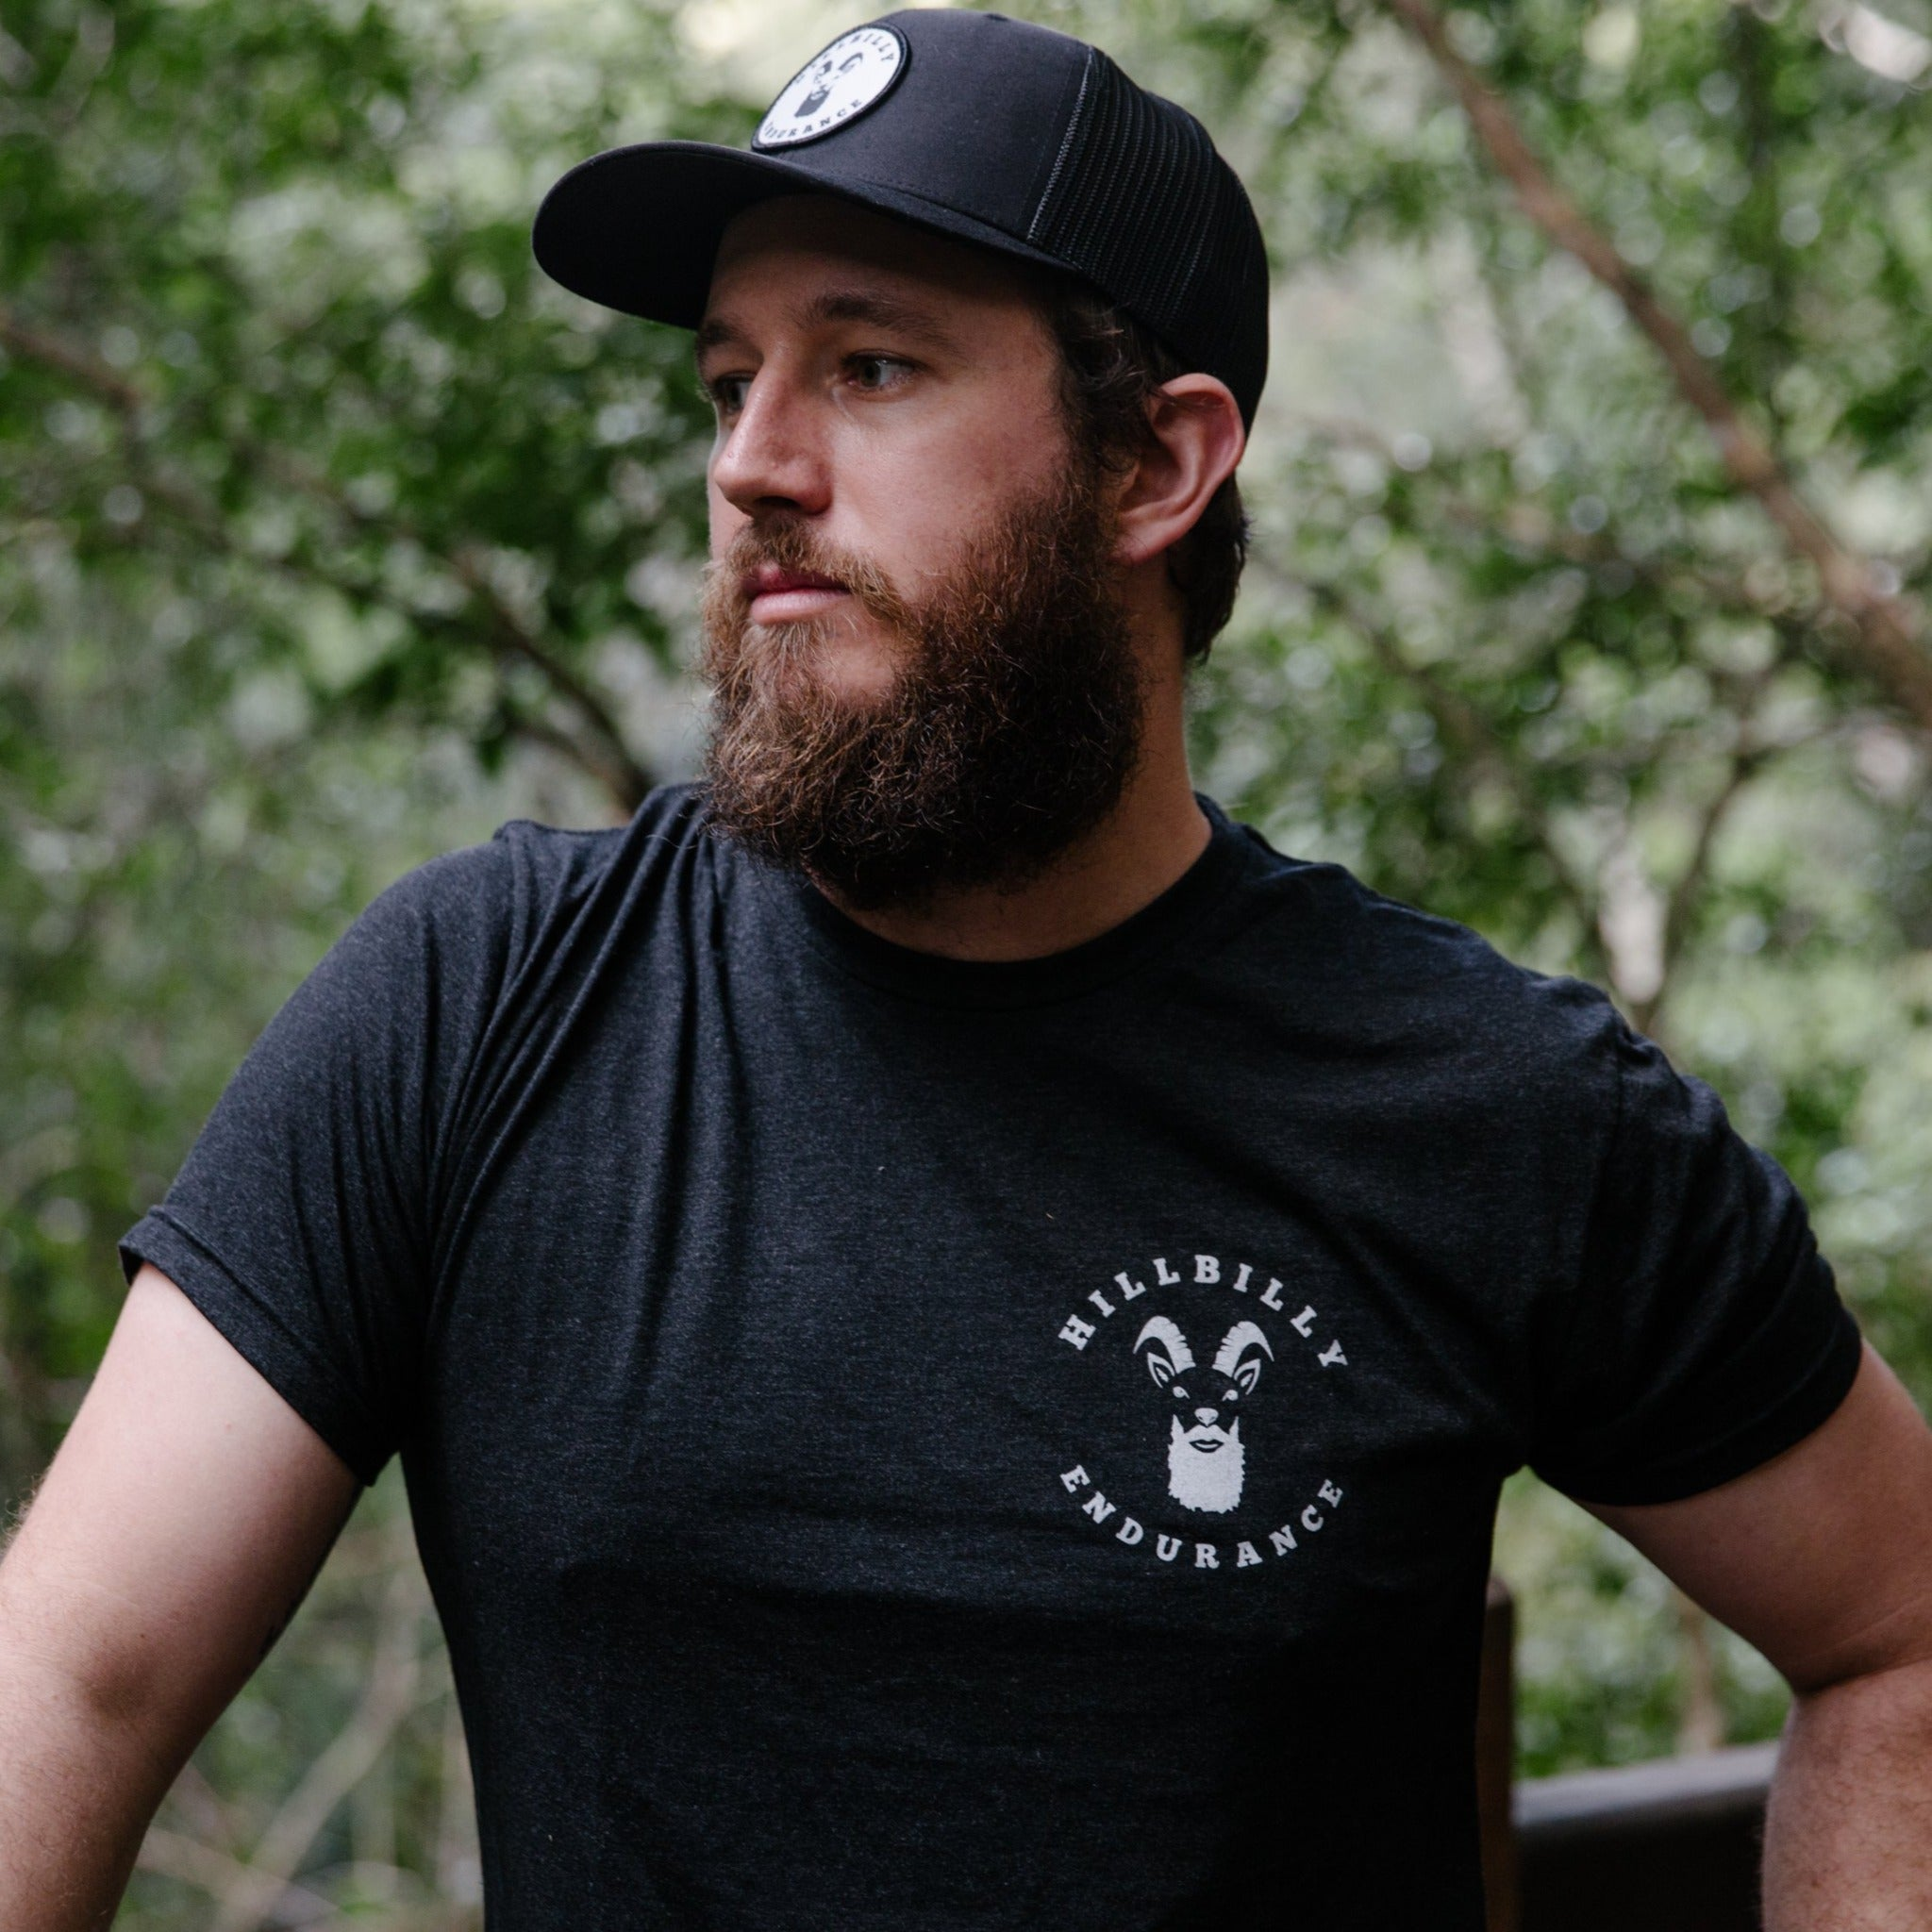 Men's Premium Tri blend everyday Hillbilly Logo T-shirt - HillBilly Endurance